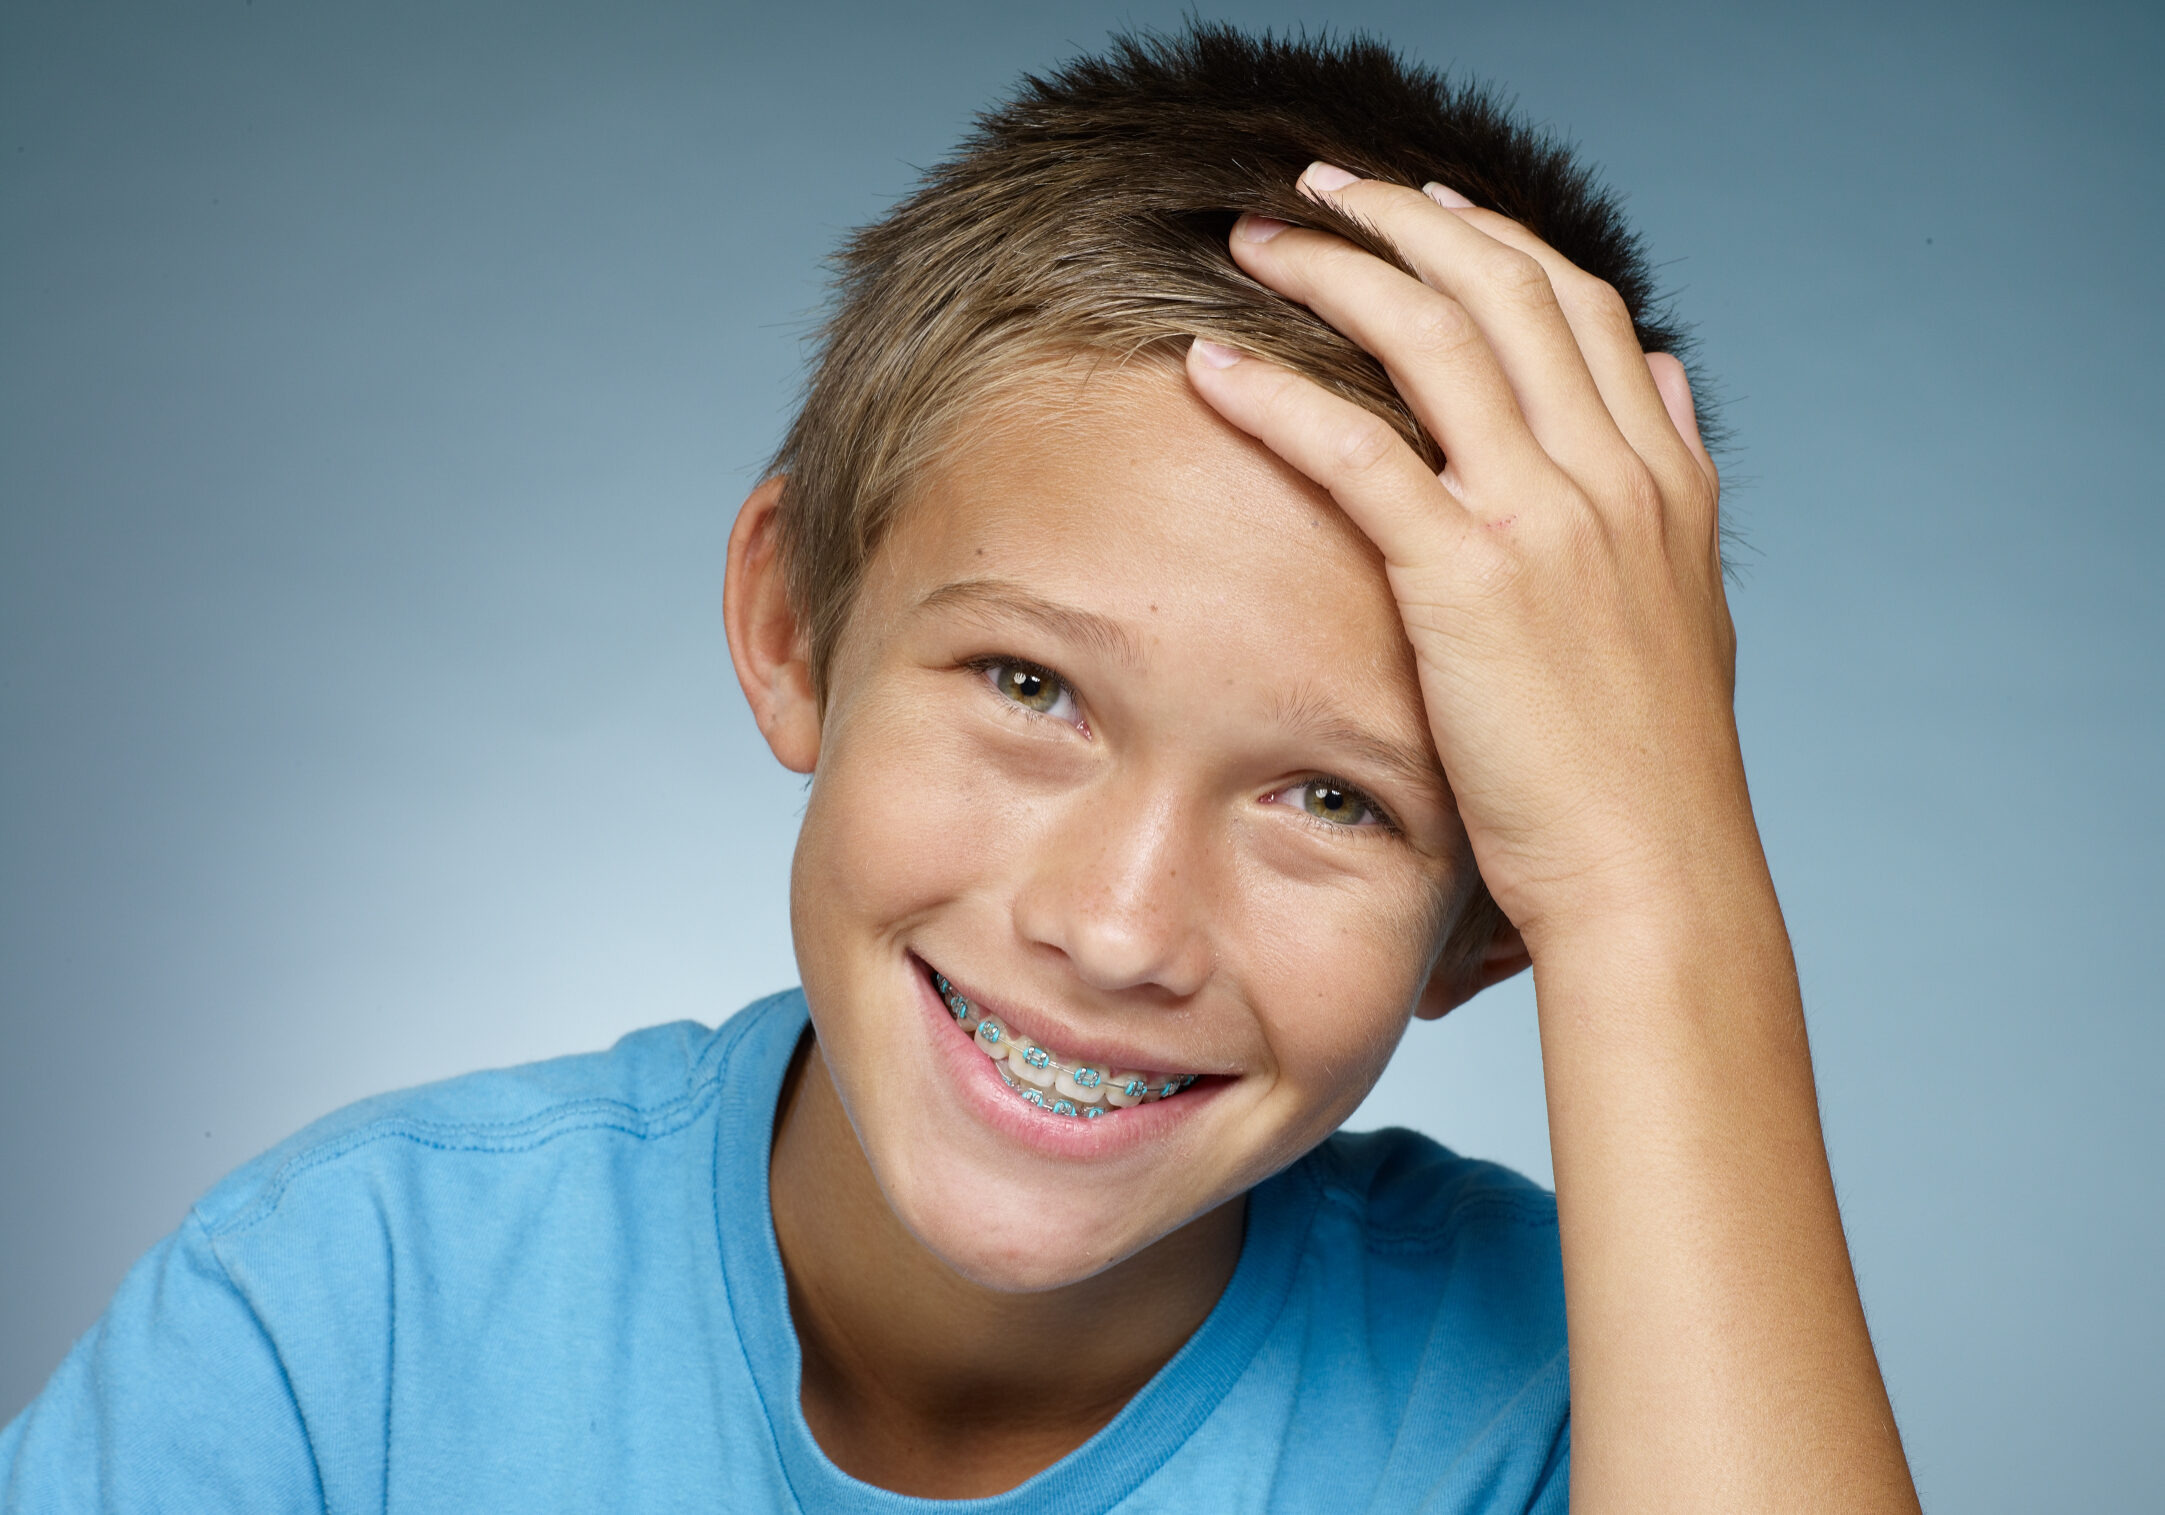 Preteen with braces, smiling with his hand on his forehead